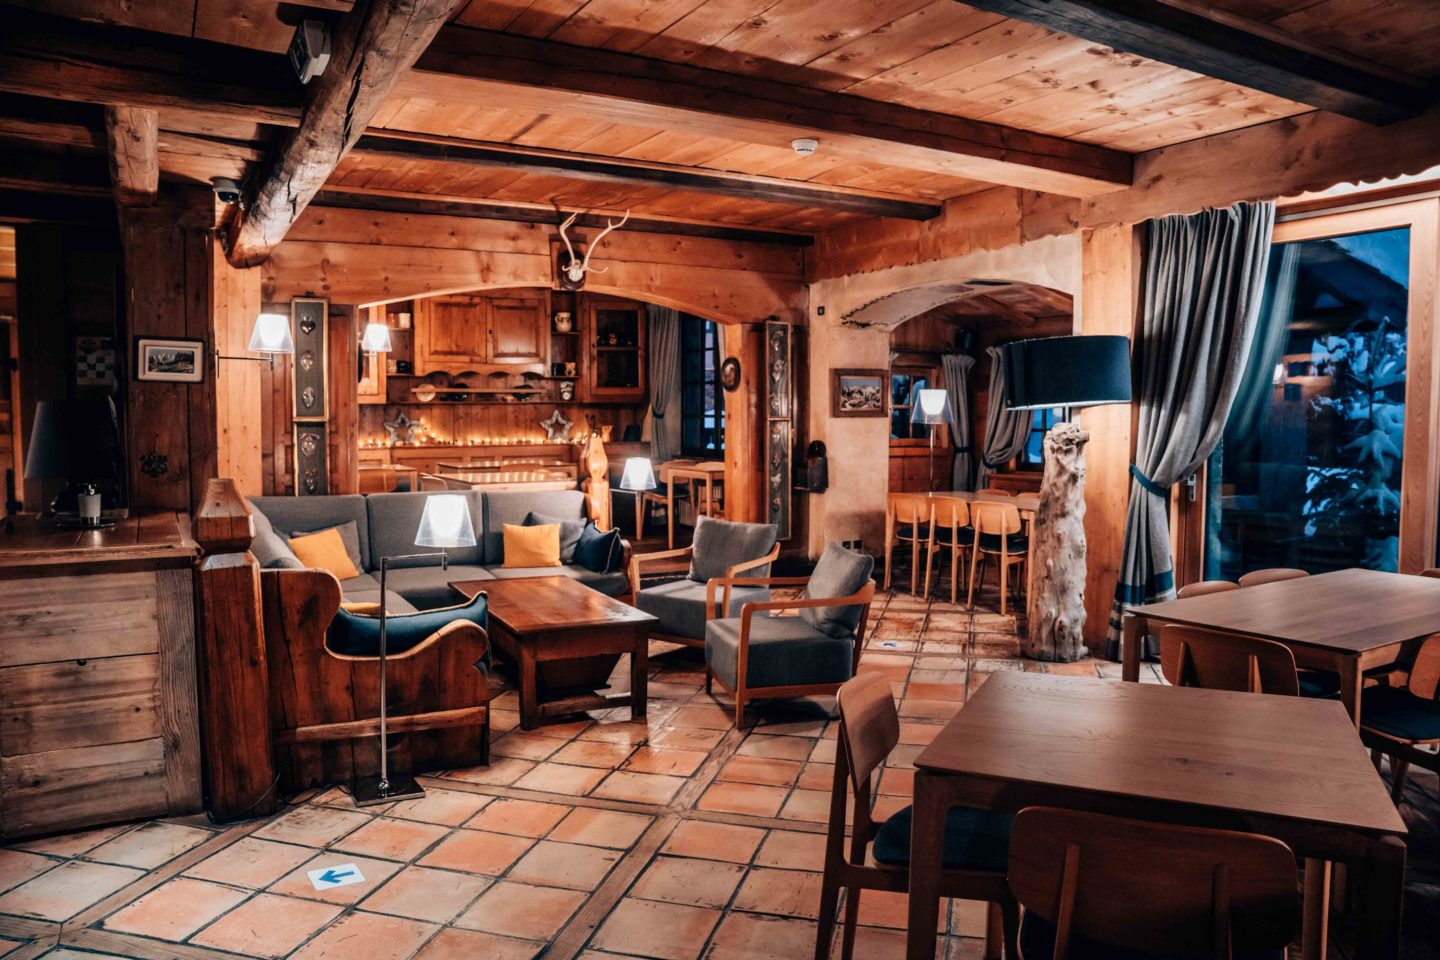 Best place to stay in Megeve